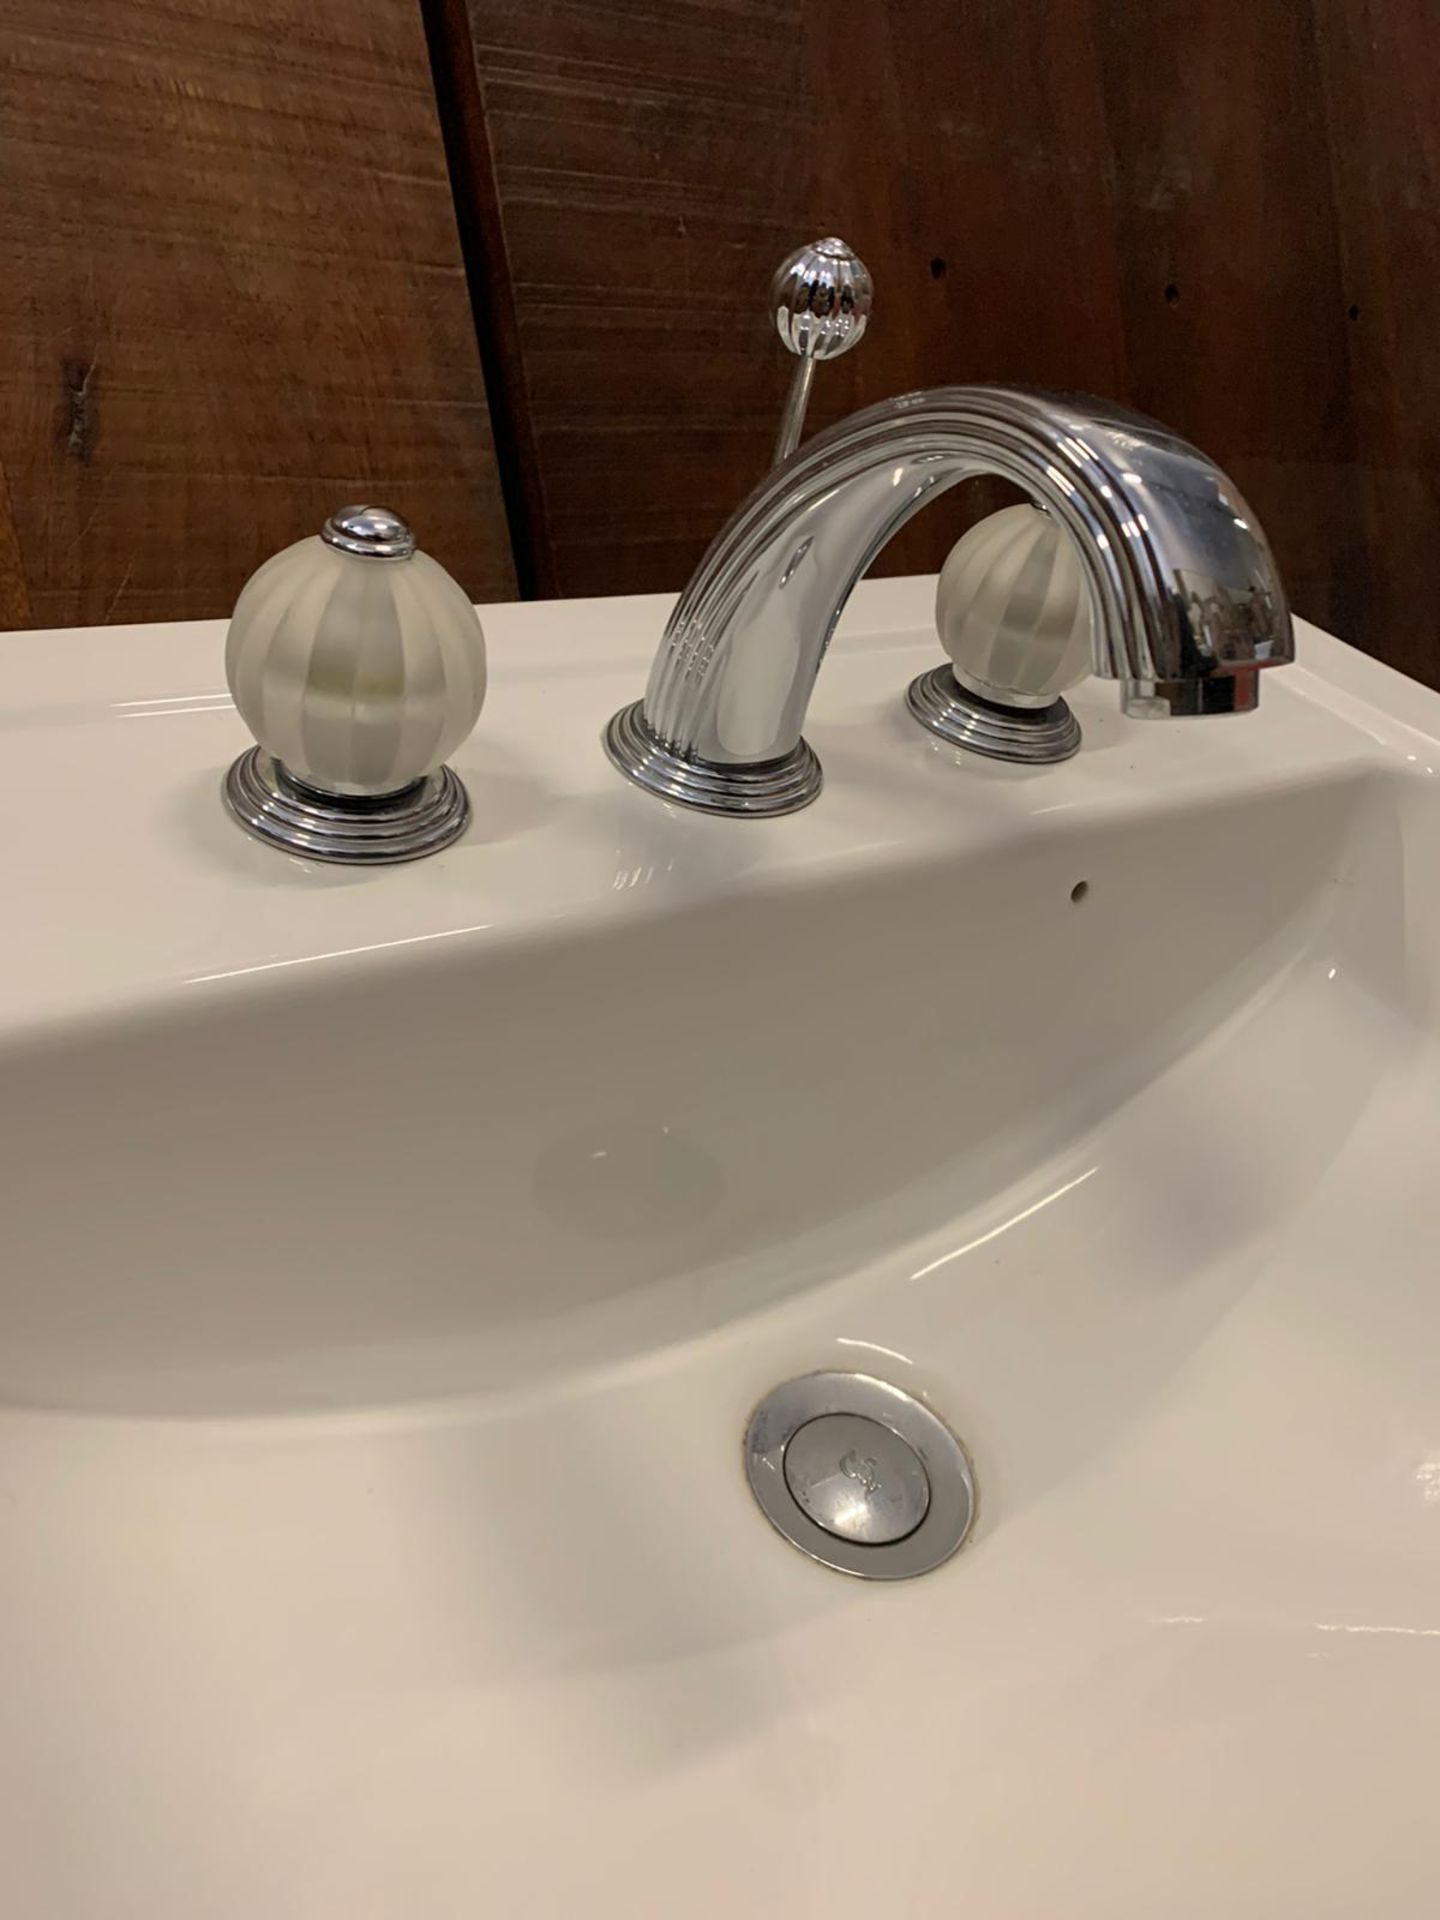 Lot 834 - Villeroy & Boch Handwash Basin With Luxury Faucet Taps By Jean-Claude Delepine In Collaboration